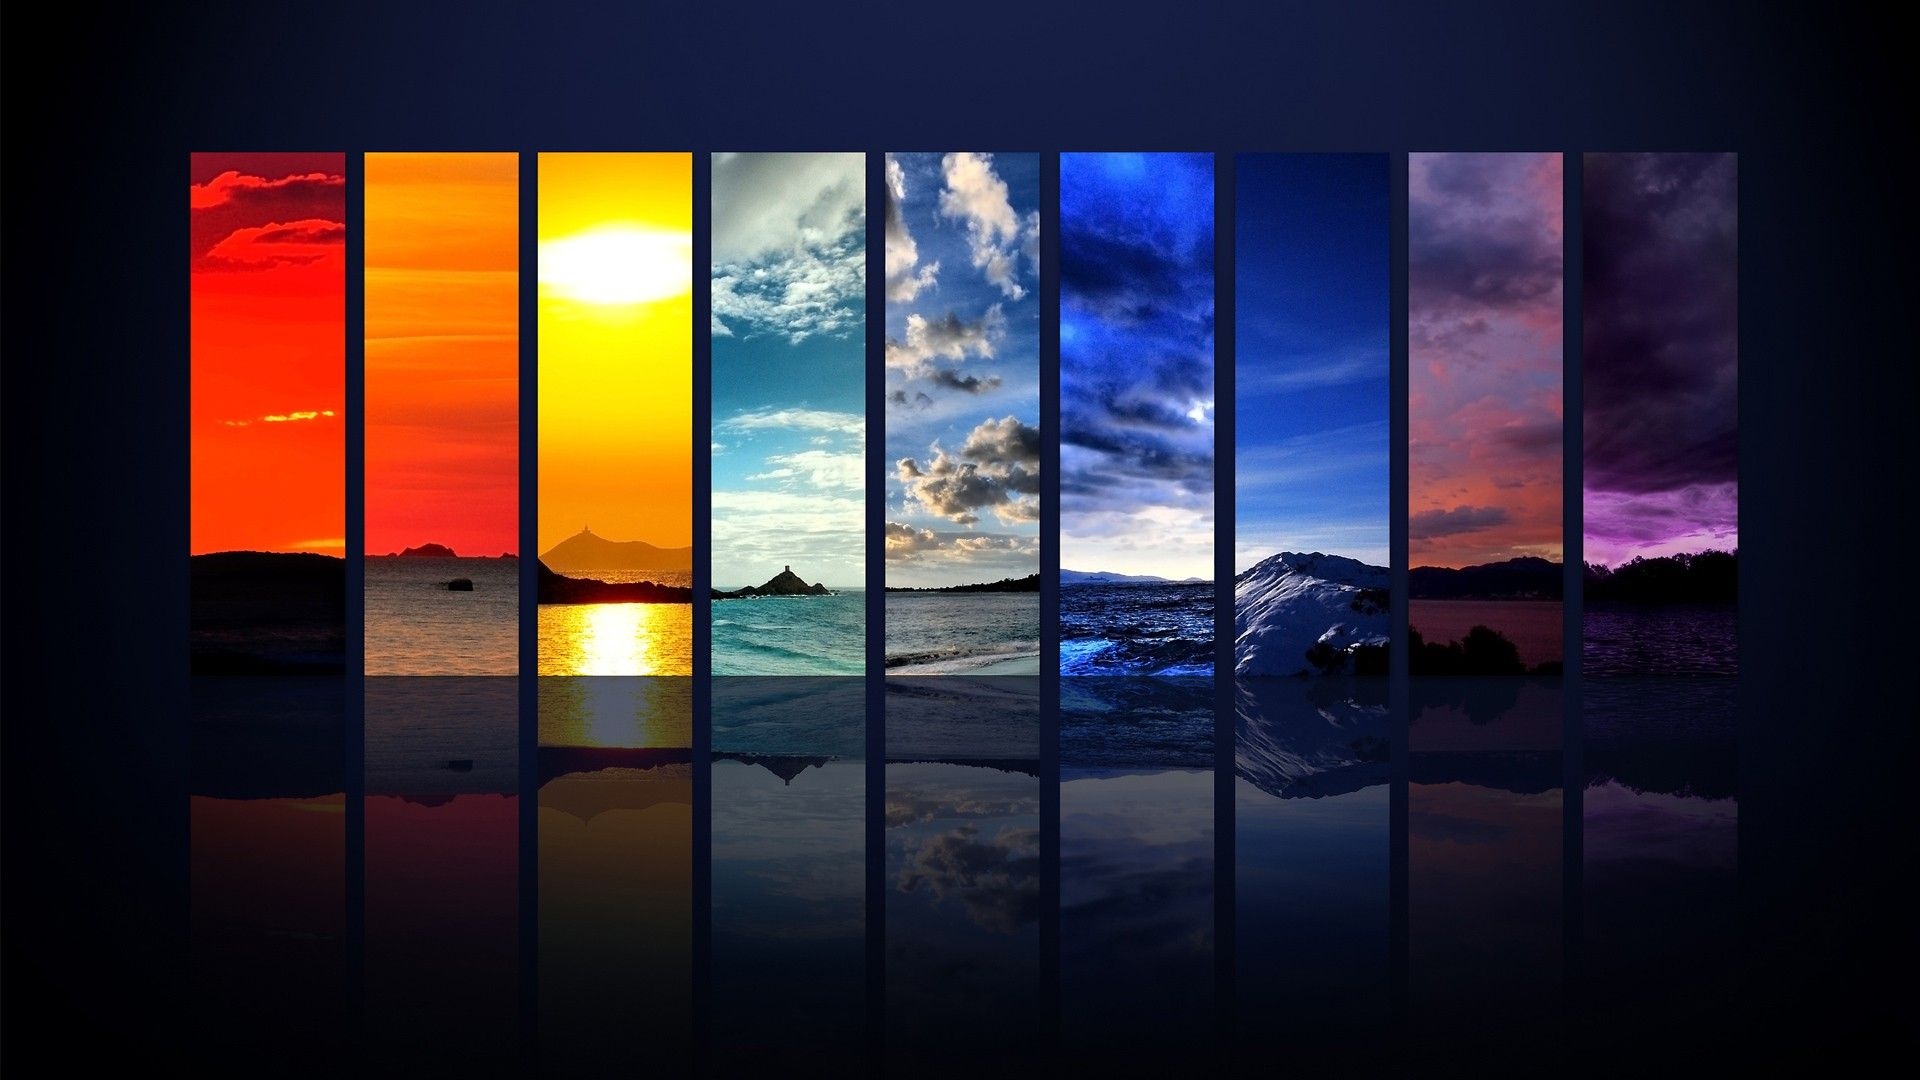 Laptop hd wallpapers google search paradise cool - Top hd wallpapers for laptop ...